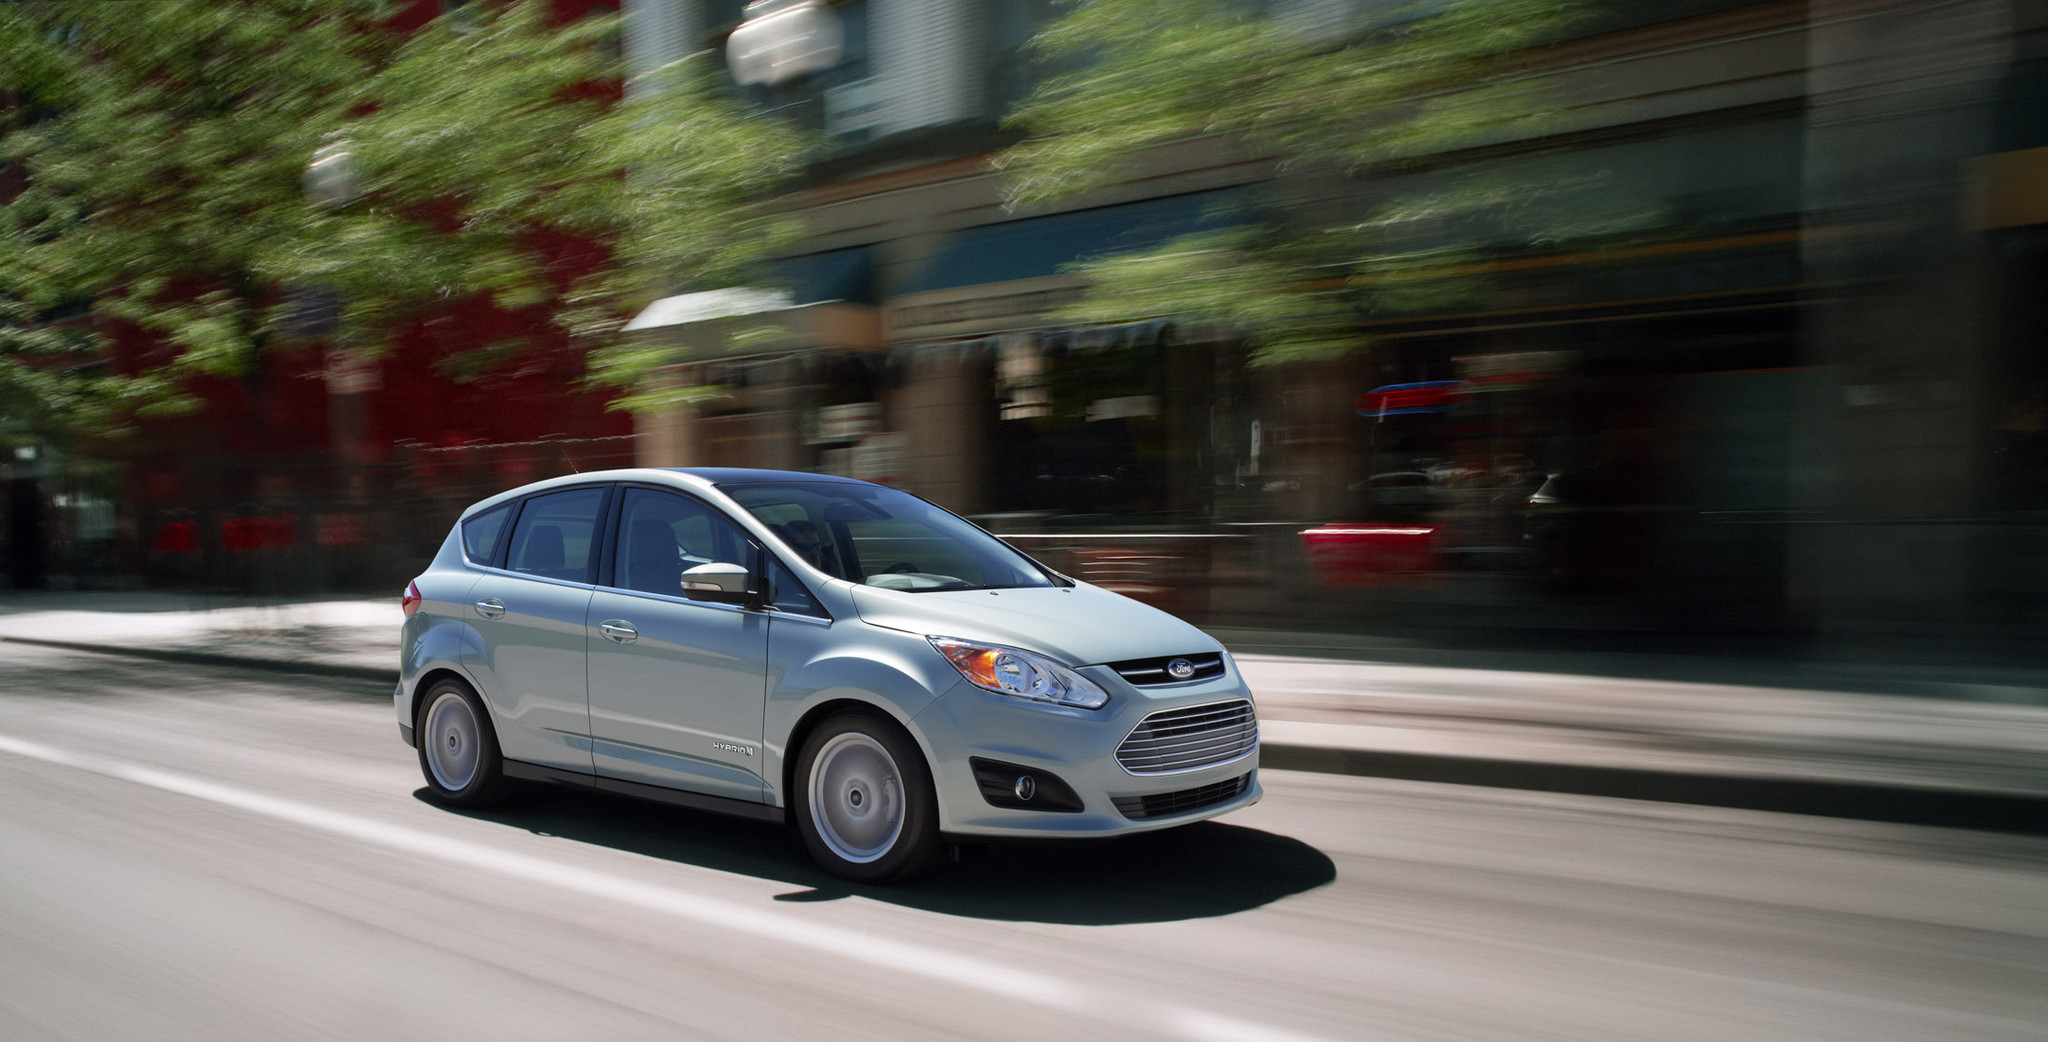 Ford says it overstated gas mileage of hybrids fiestas plans refunds la times